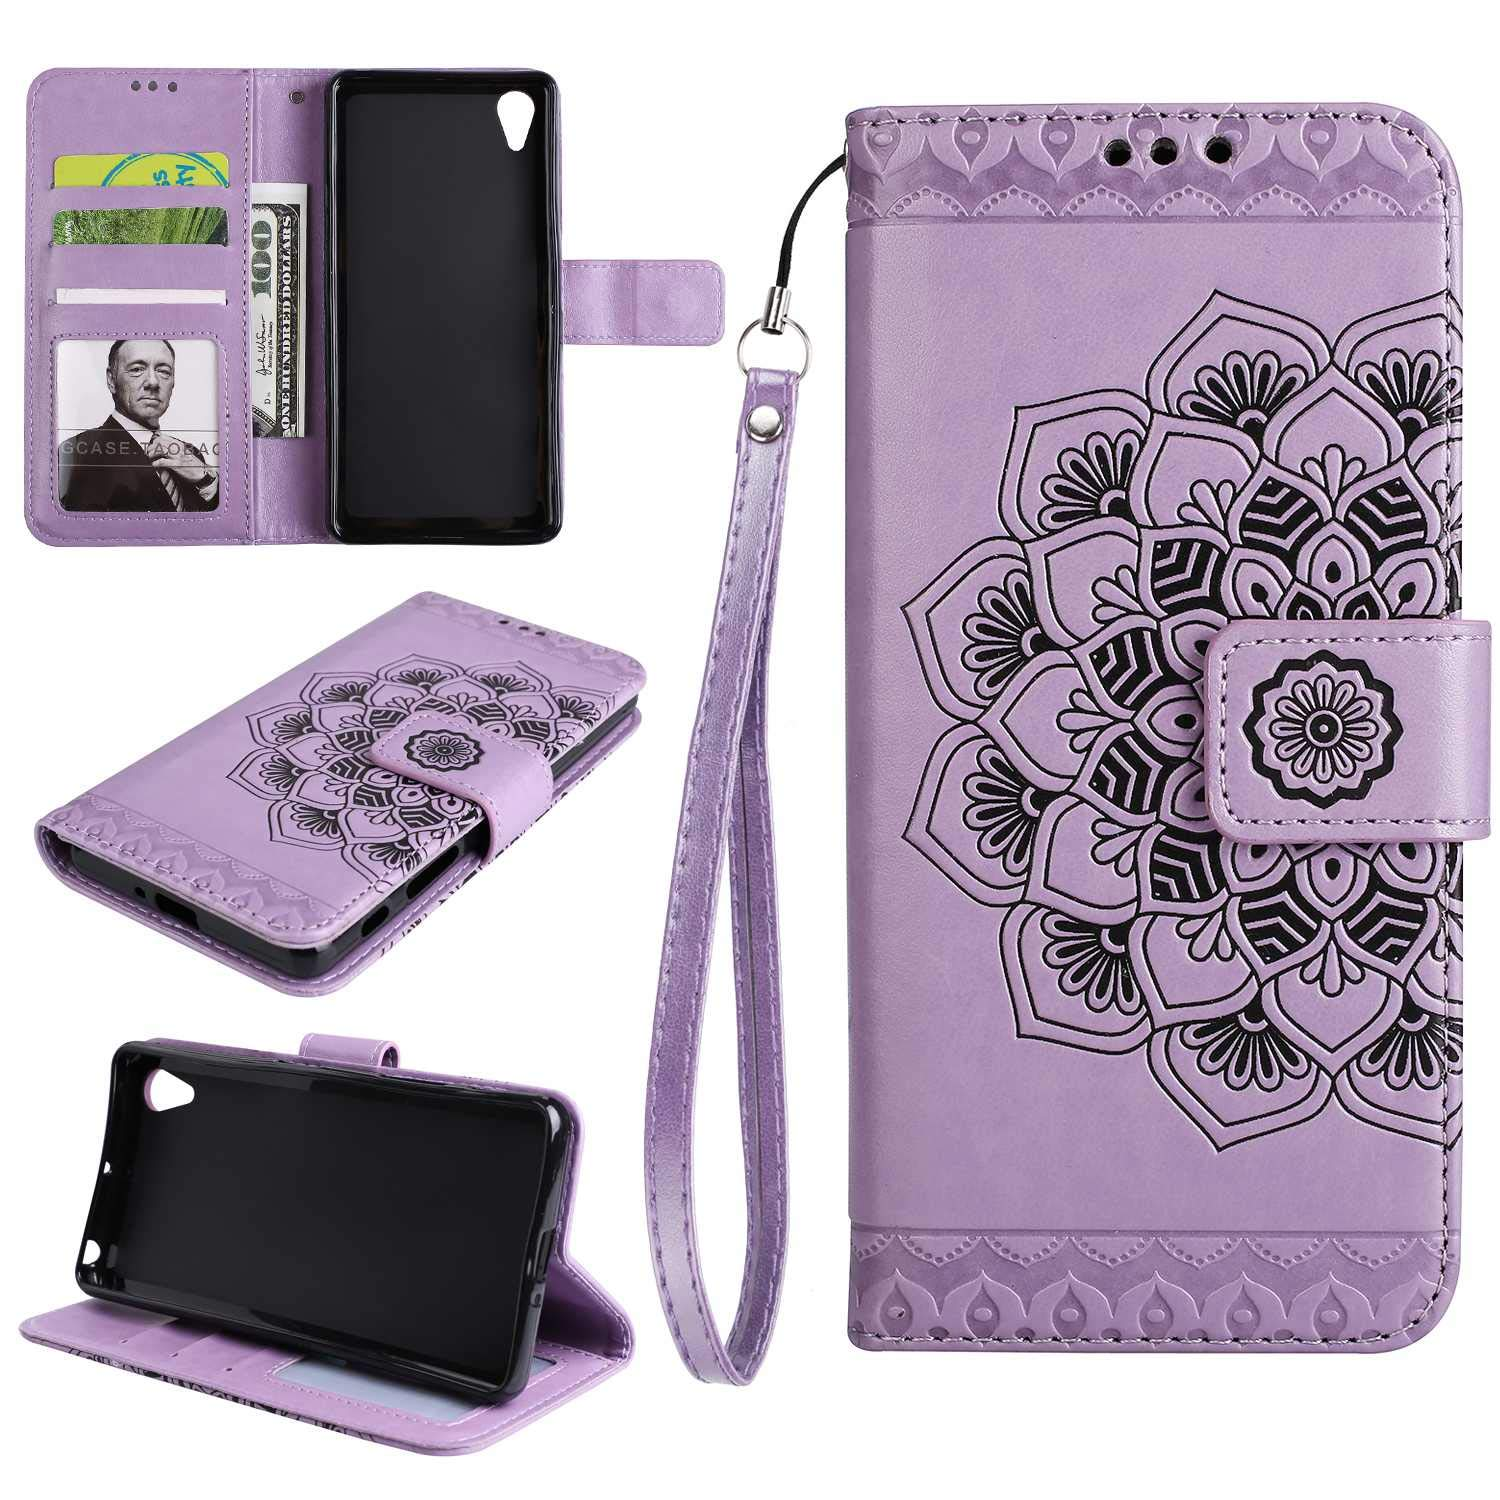 Gray The Grafu Flip Leather Wallet Cover Card Slot Holder with Kickstand and Metal Magnetic Closure for Sony Xperia X Performance Sony Xperia X Performance Case